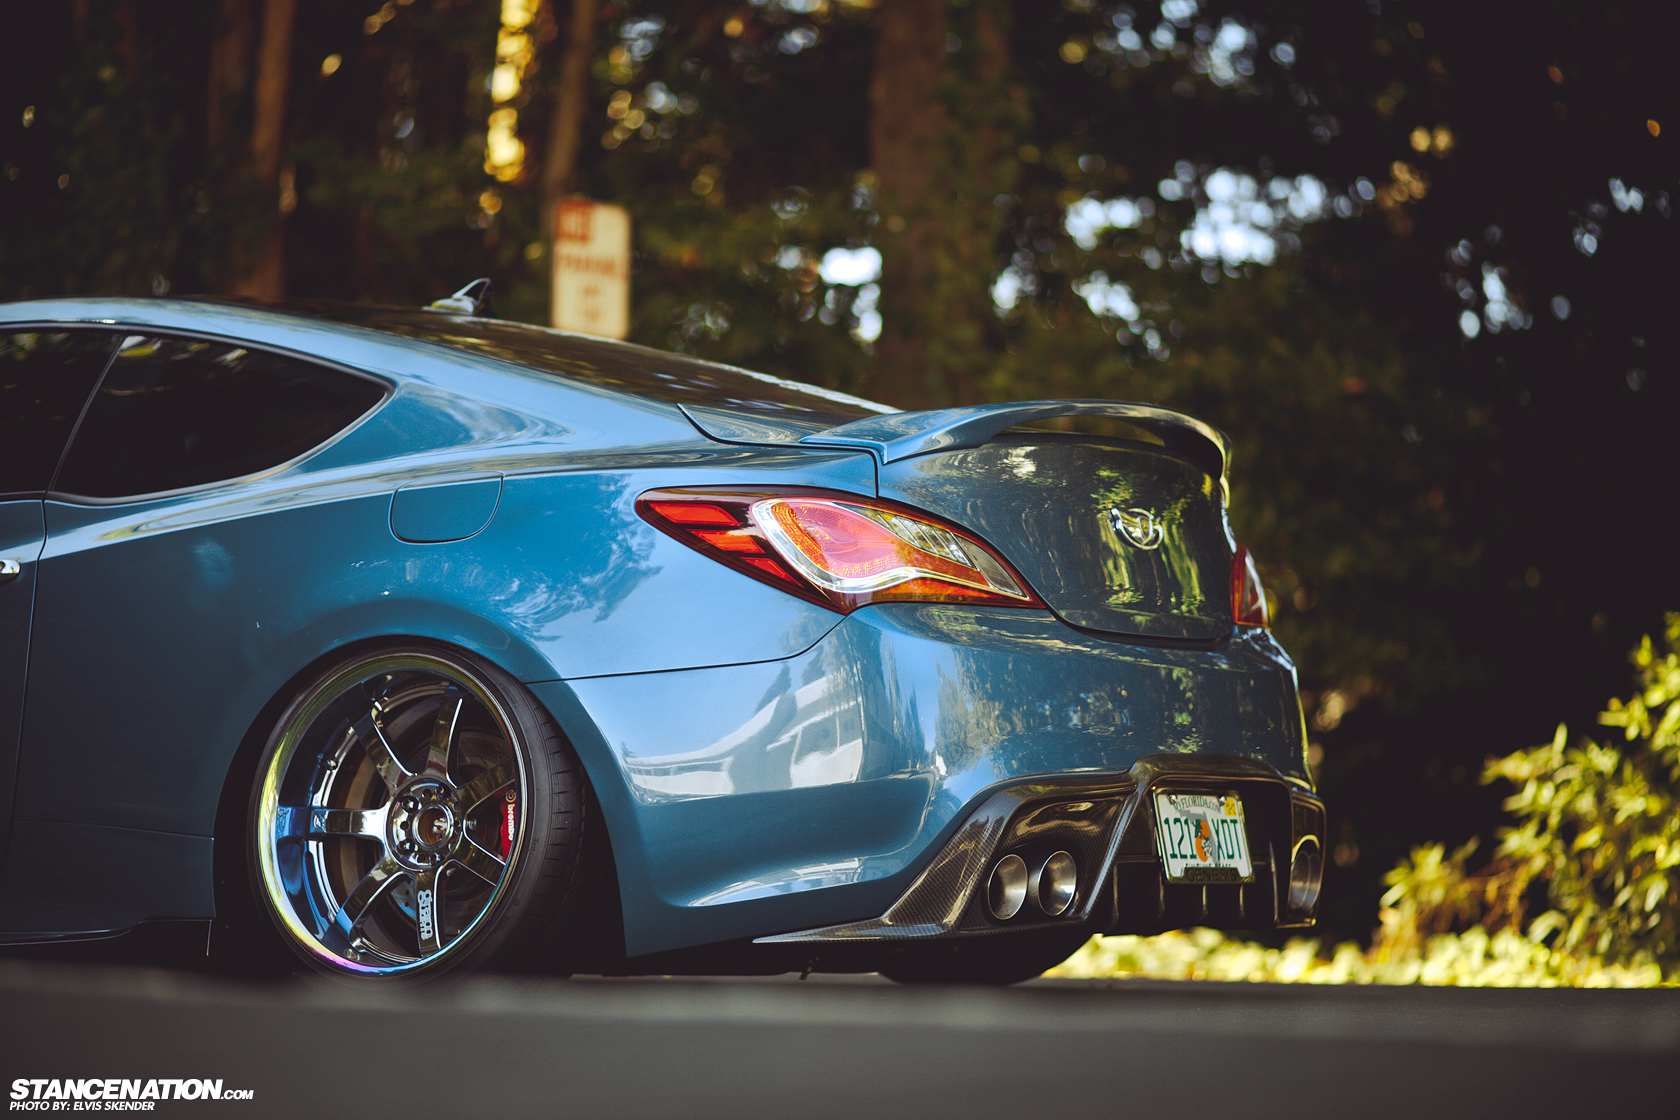 New Age Hyundai Jonjon S Stunning Genesis Coupe Stancenation Form Gt Function